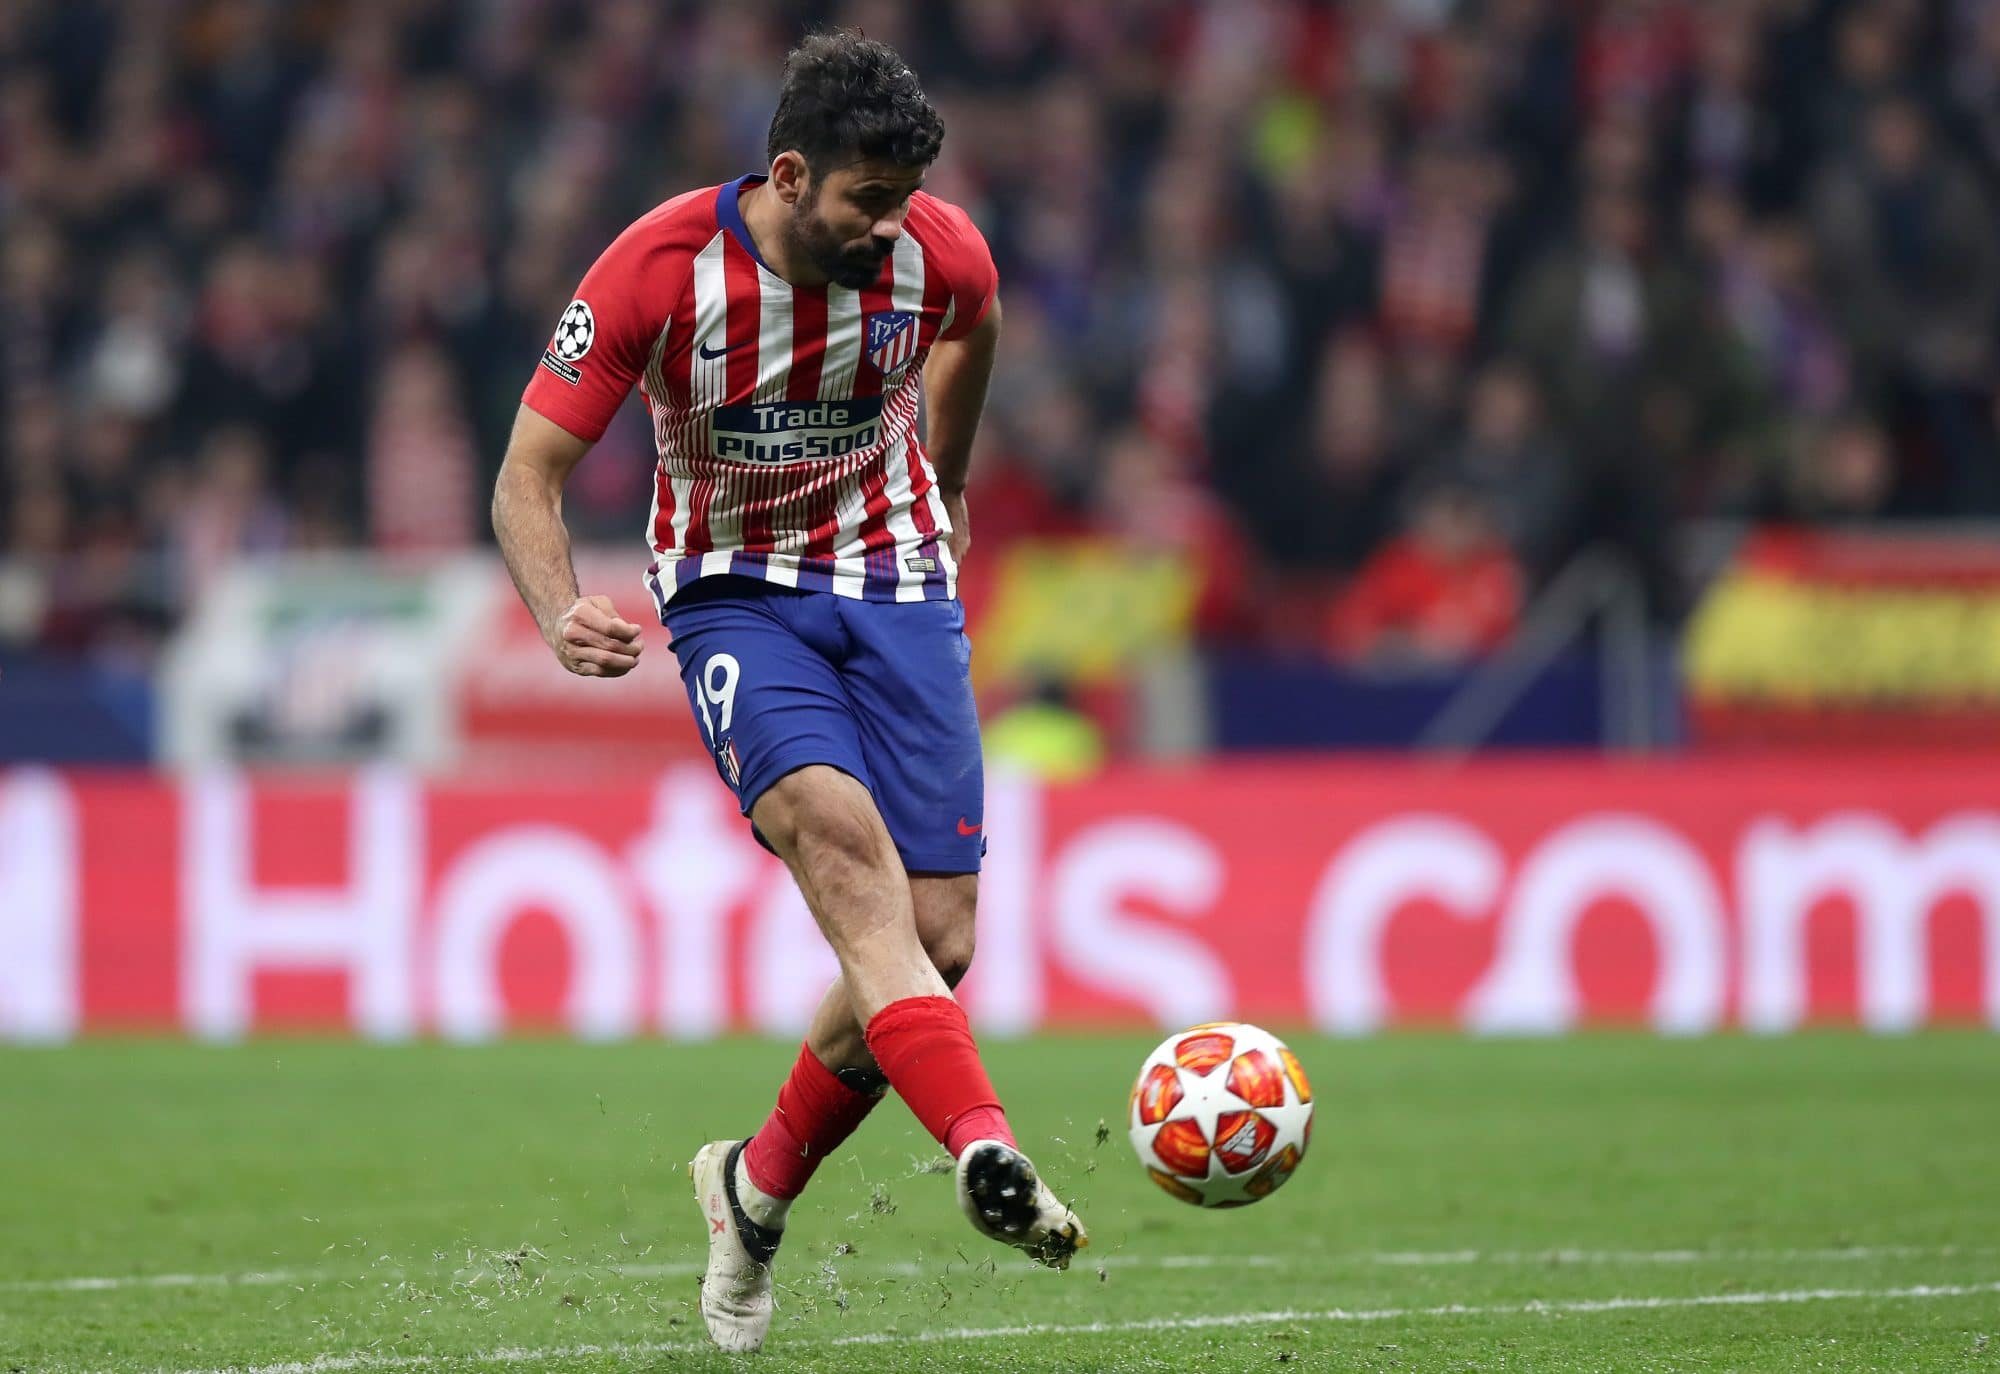 Everton target and former Chelsea man Diego Costa in action for Atlético Madrid